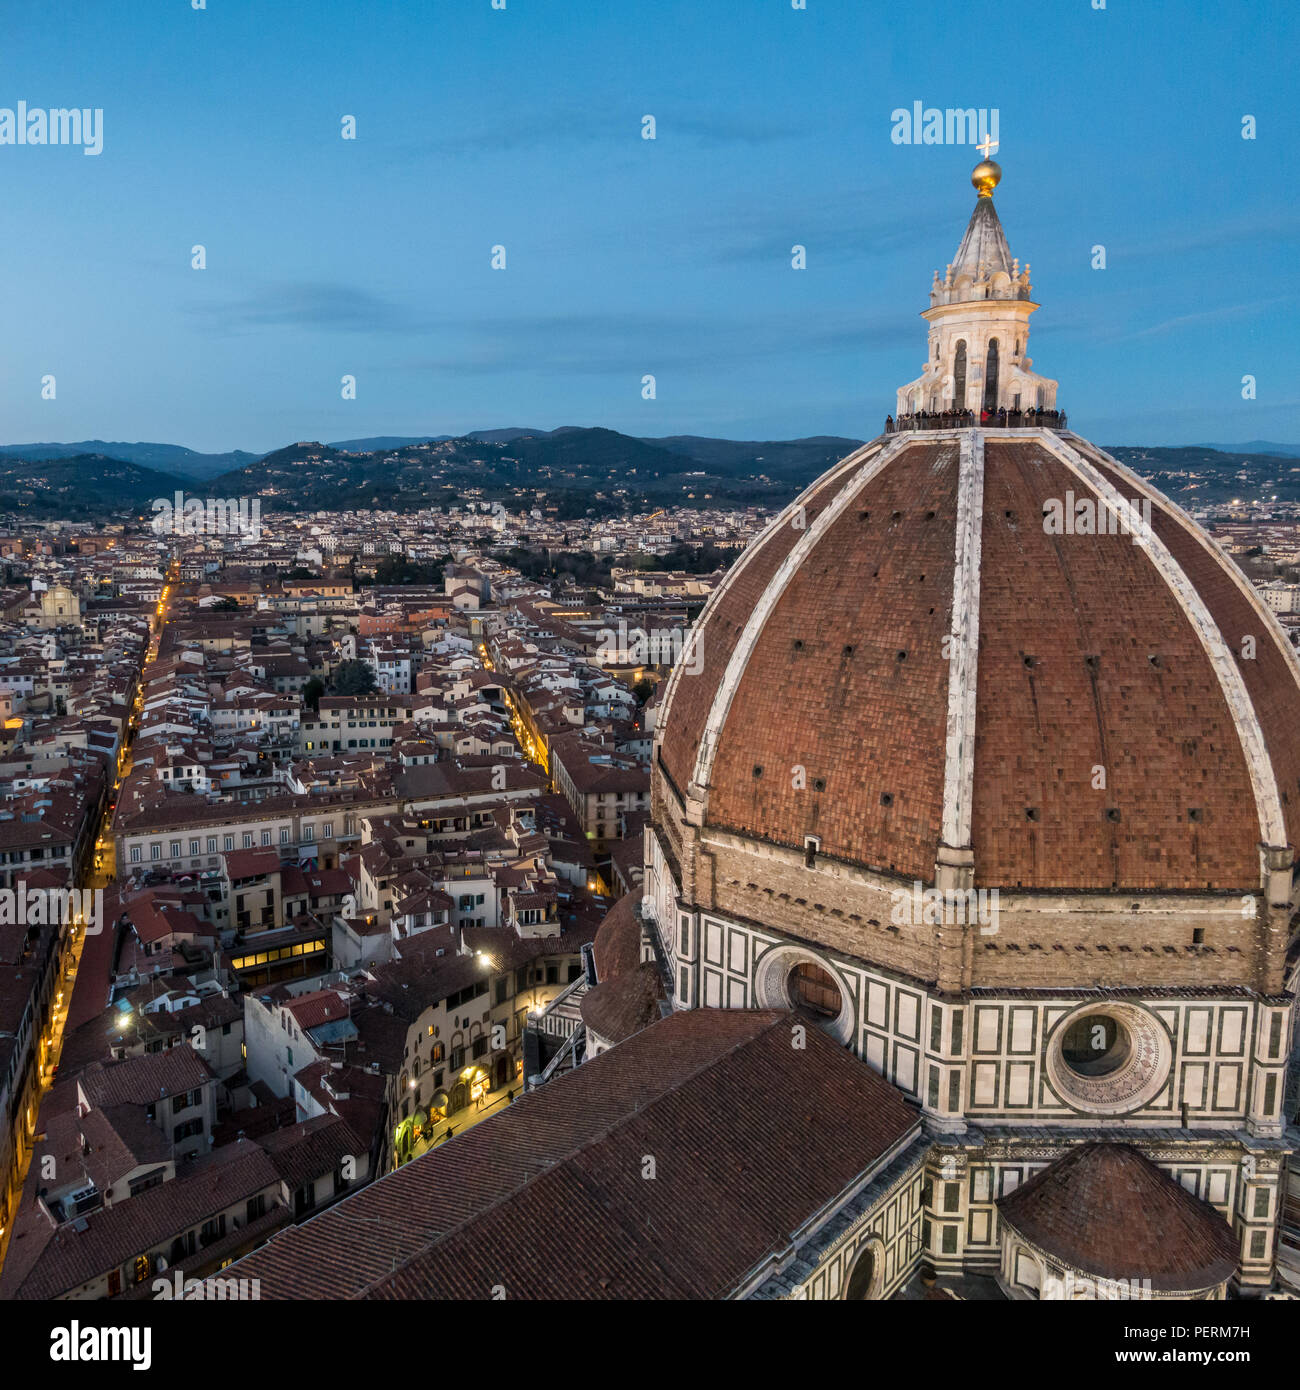 Florence, Italy - March 23, 2018: Tourists gather on the cupola of Florence's Duomo cathedral to watch the sunset. Stock Photo